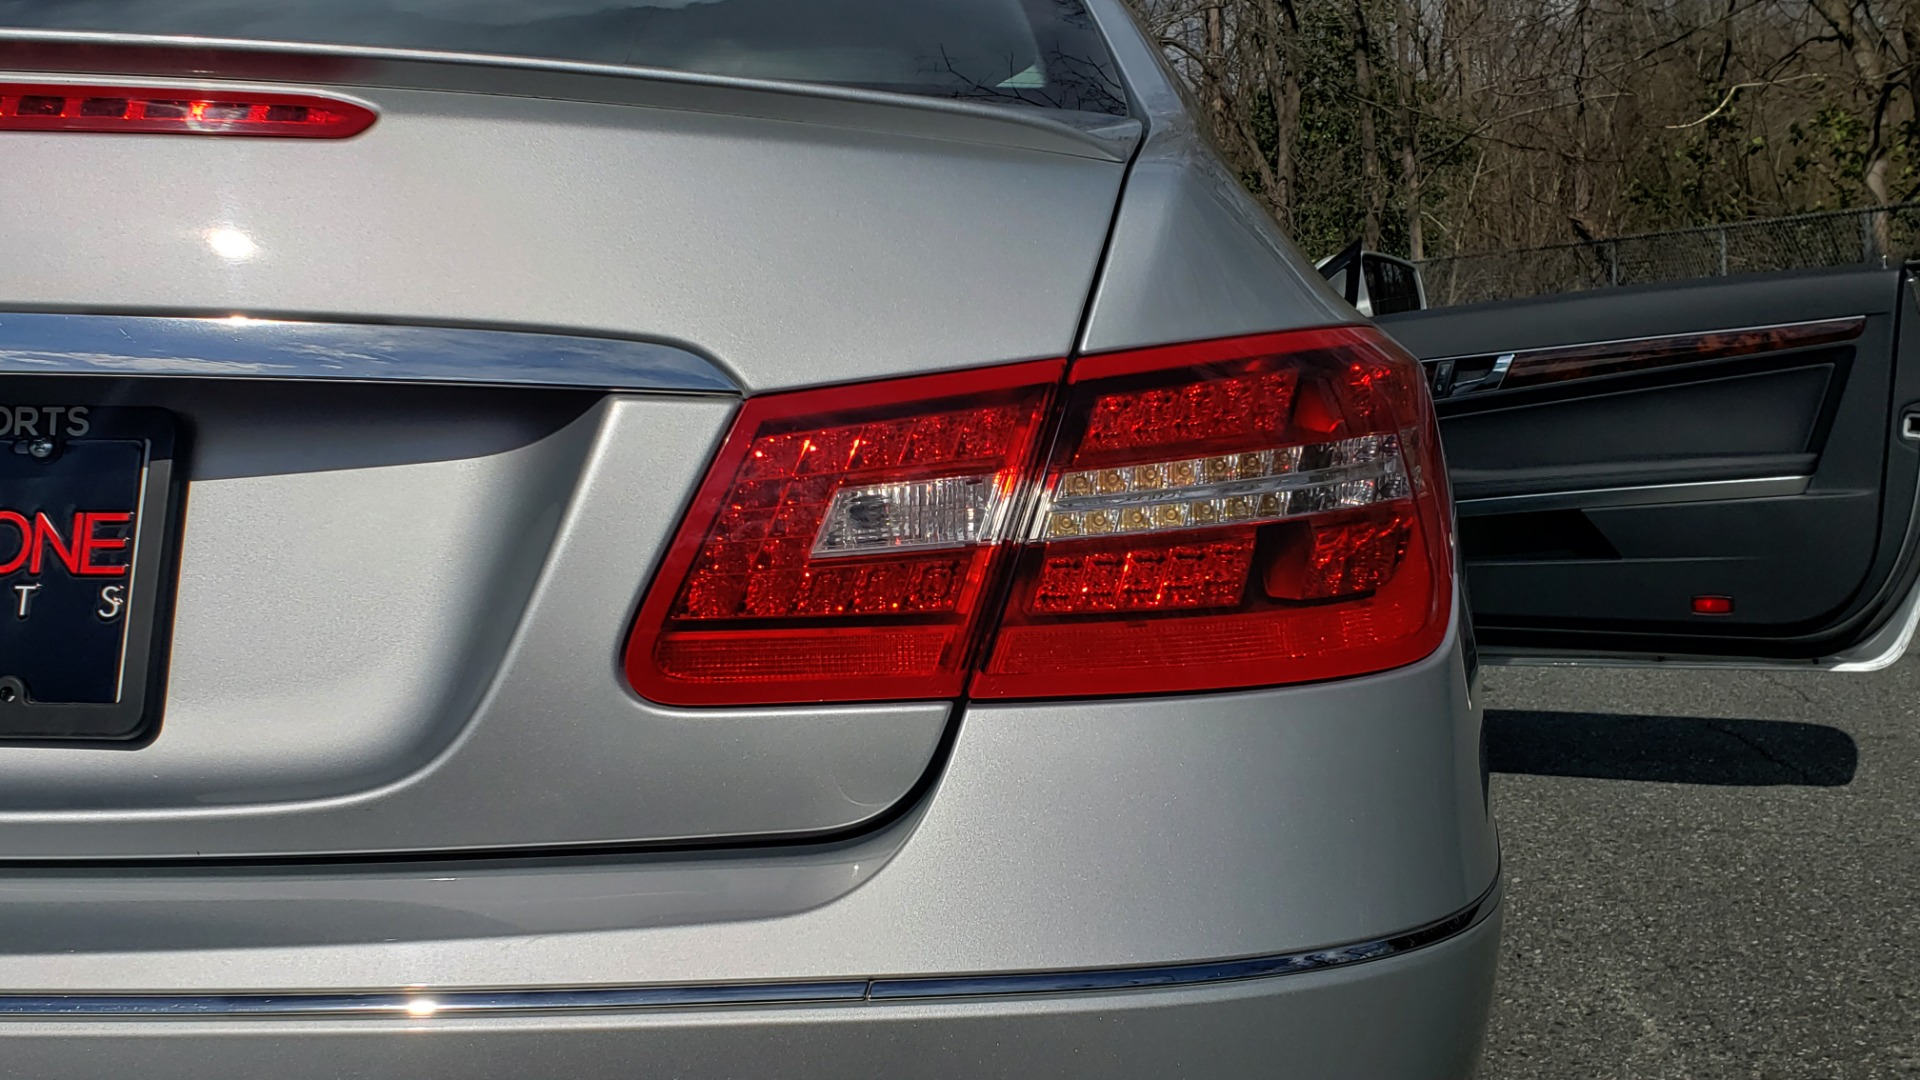 Used 2013 Mercedes-Benz E-CLASS E 350 COUPE PREM / NAV / PANO-ROFF / KEYLESS-GO / REARVIEW for sale Sold at Formula Imports in Charlotte NC 28227 26